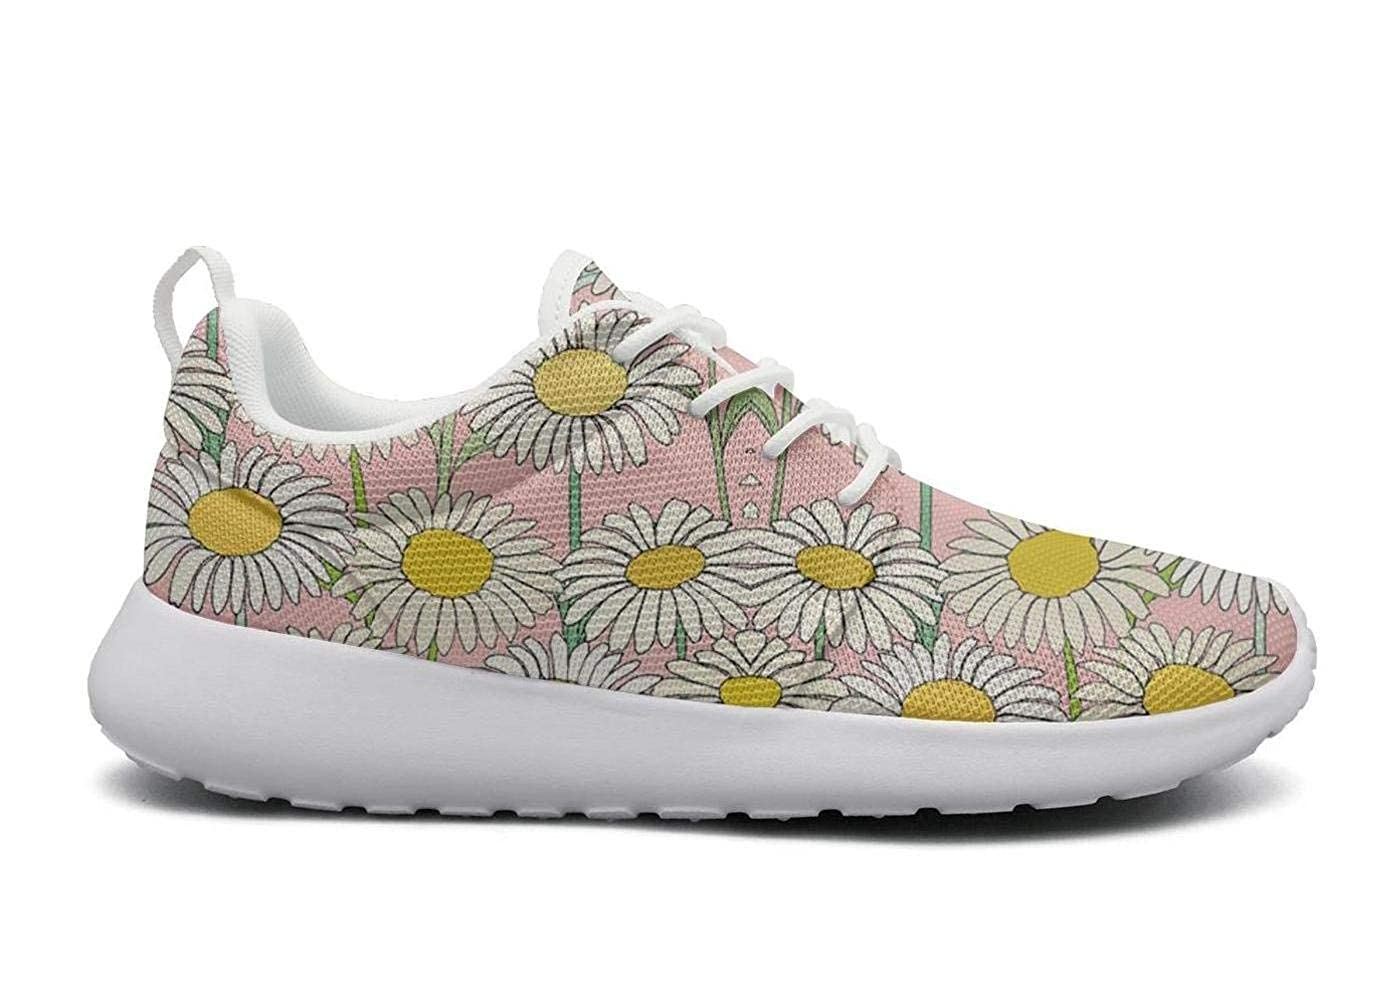 Comfort Woman Lightweight Mesh Shoes Seamless Sunflower Floral Sneakers Workout Lace-Up